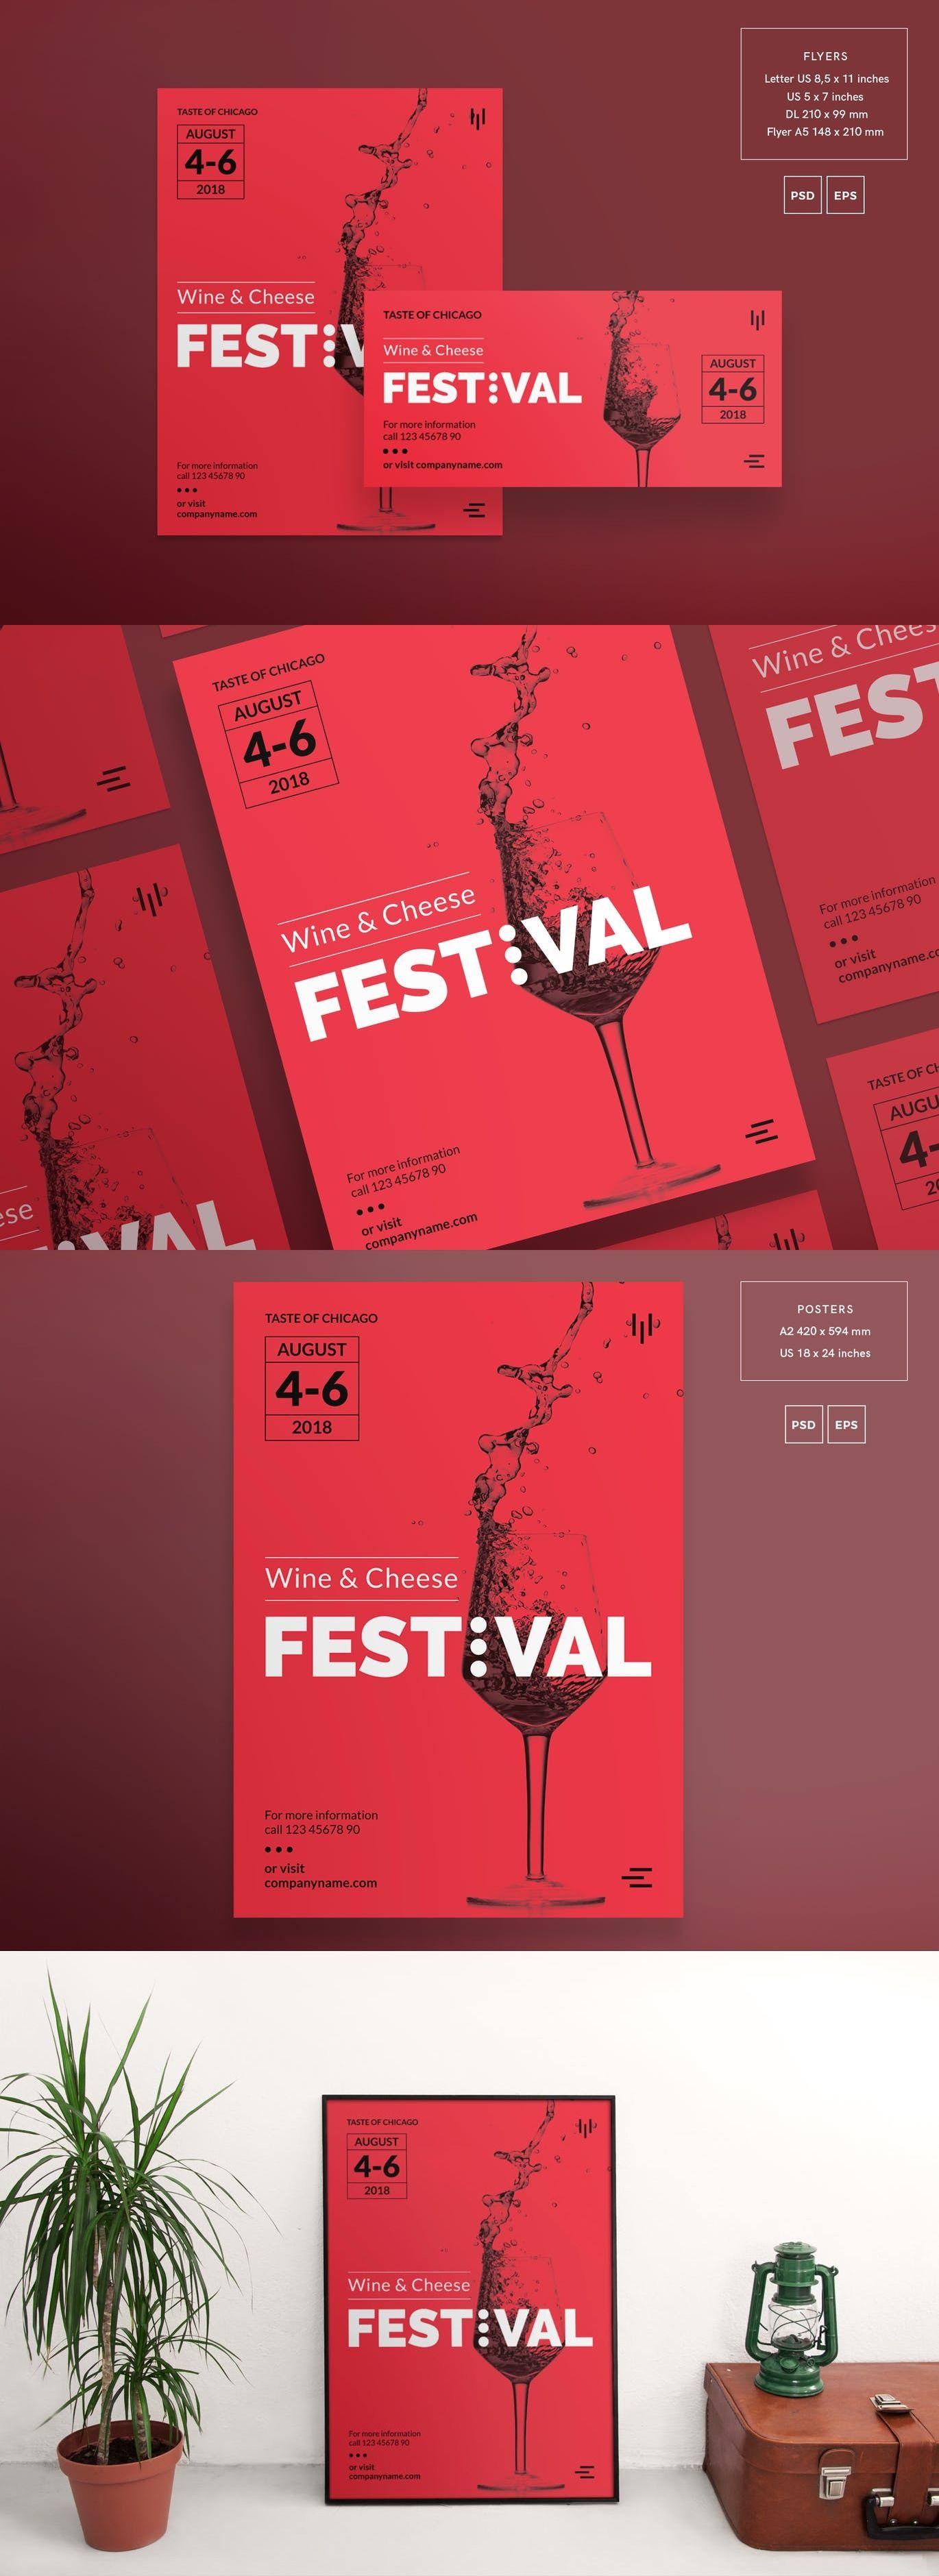 Wine Festival Flyer And Poster Template By Ambergraphics On Envato Elements Poster Template Festival Flyer Wine Poster